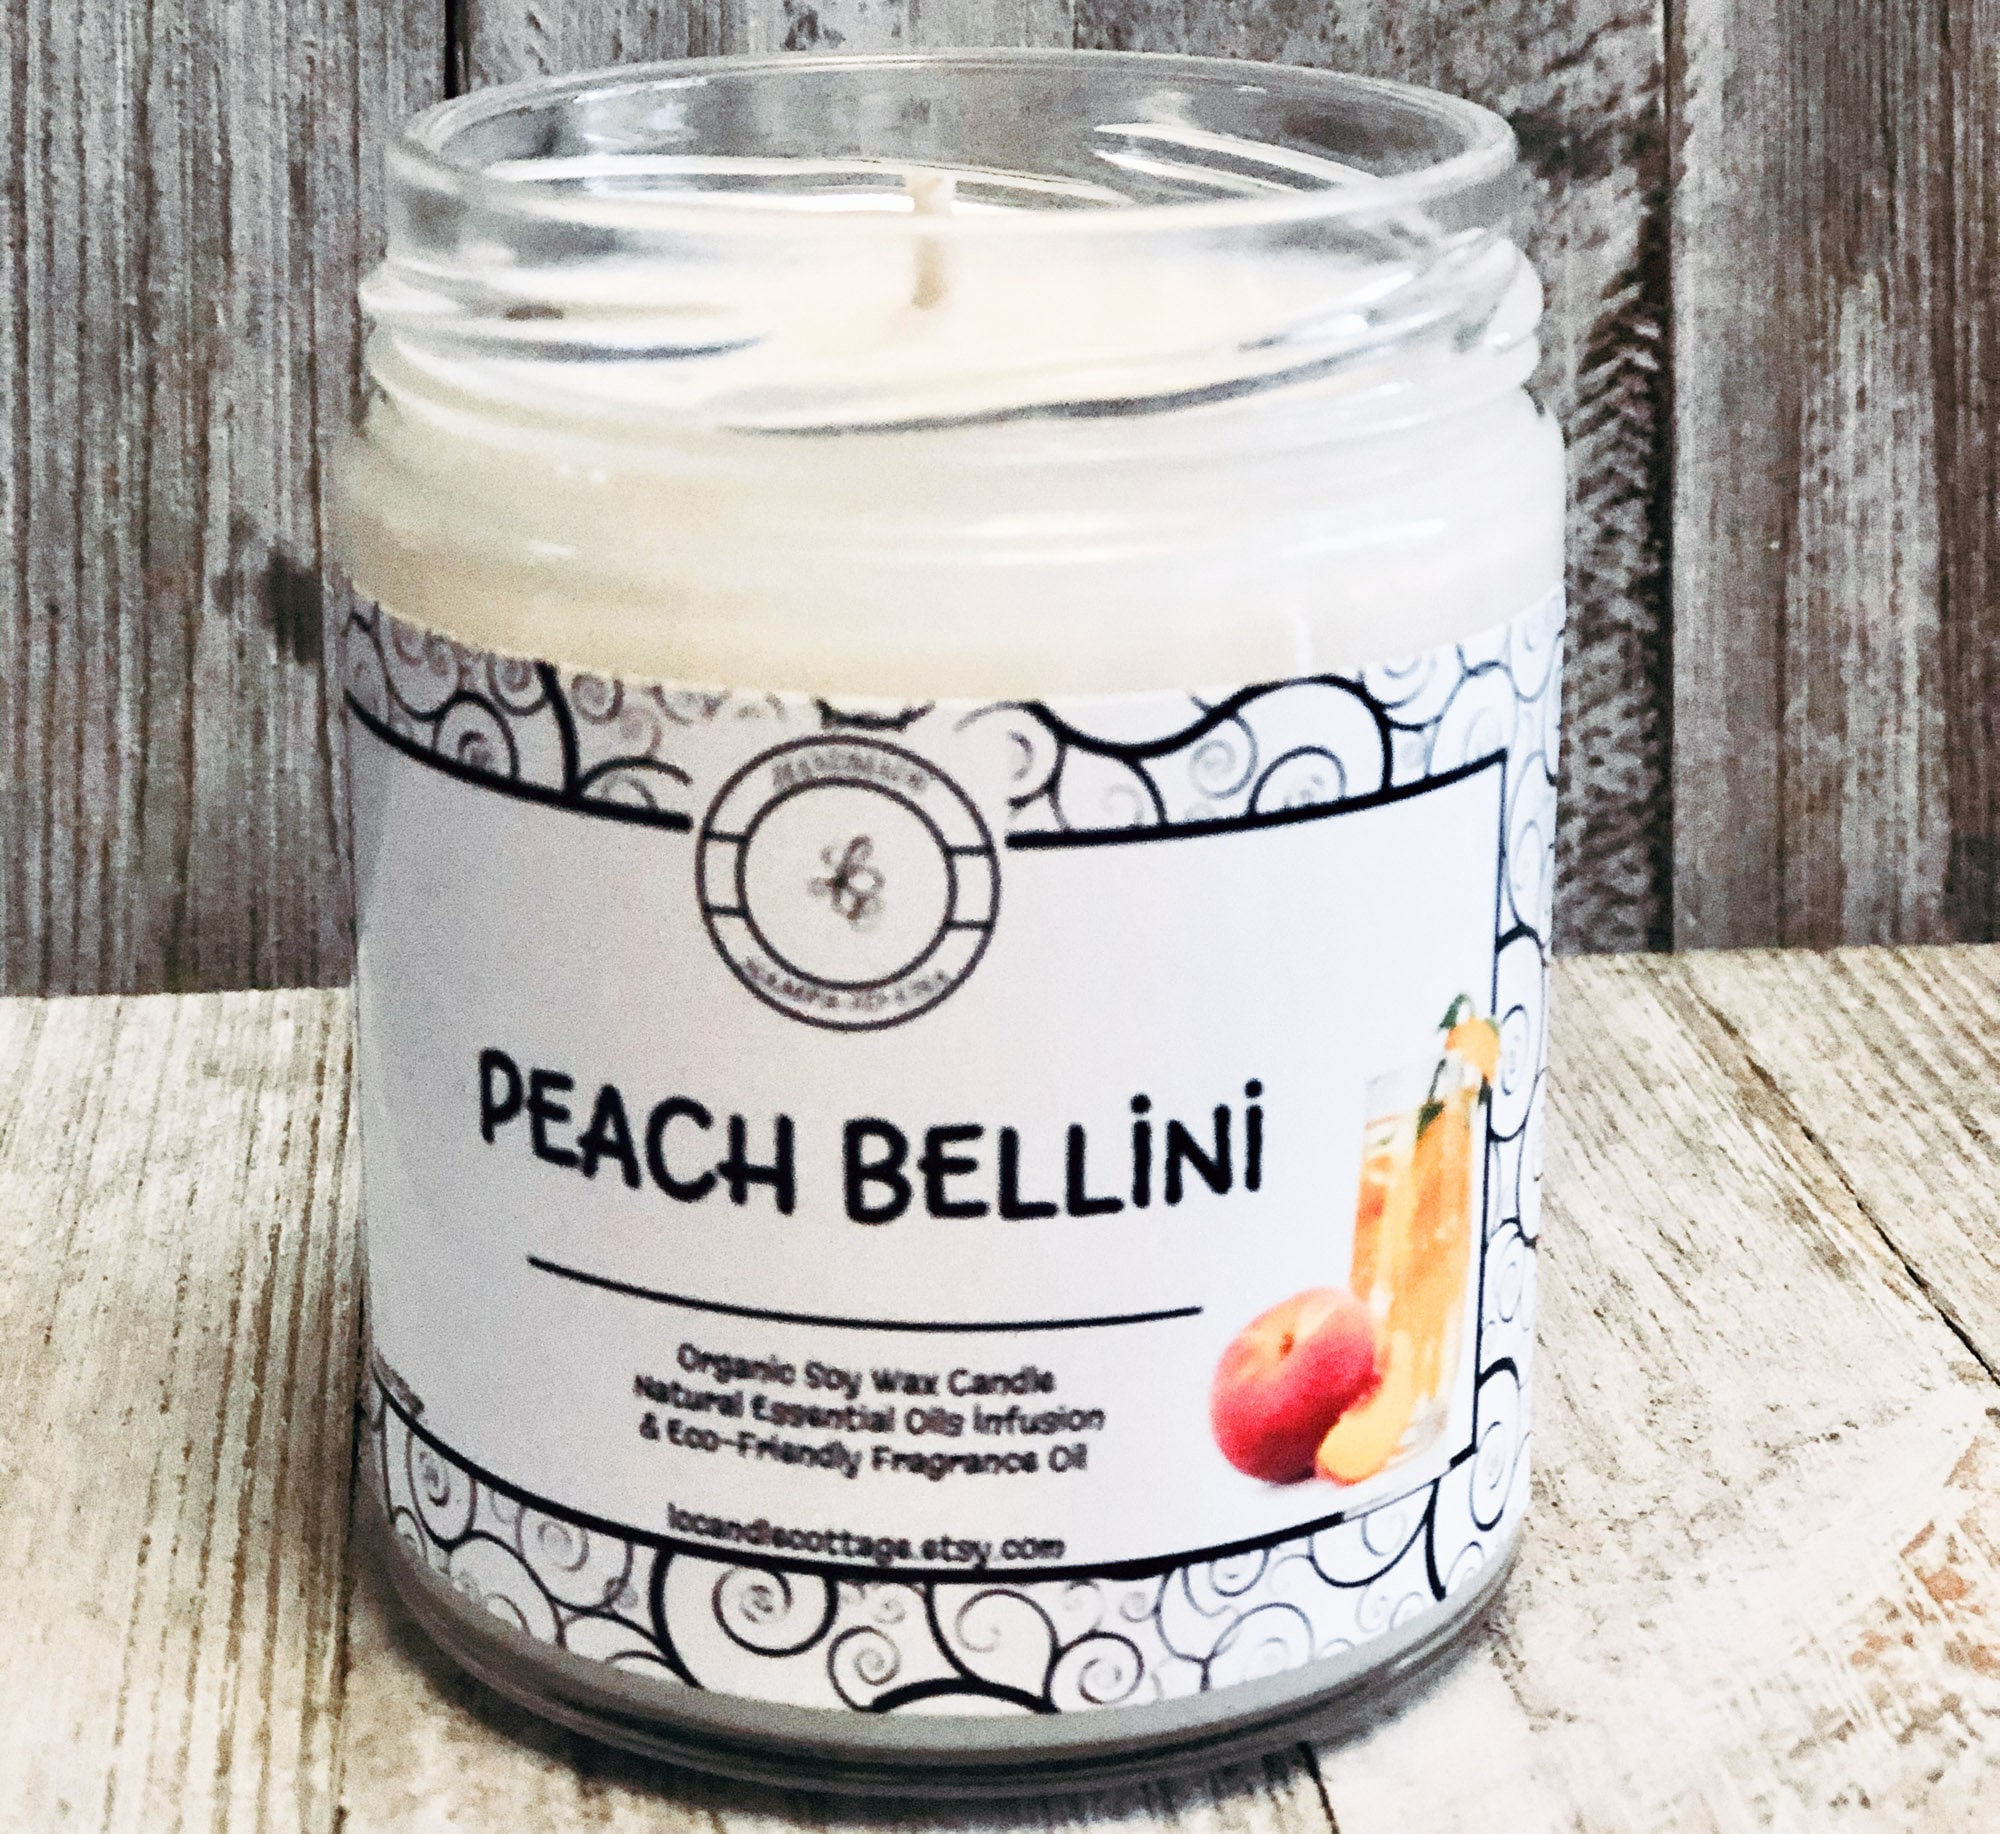 Peach Bellini Natural Soy Wax Candle  Fun Candles  Spring & Summer Candles   Vegan  Gifts Ideas  Tropical  Scented Candles